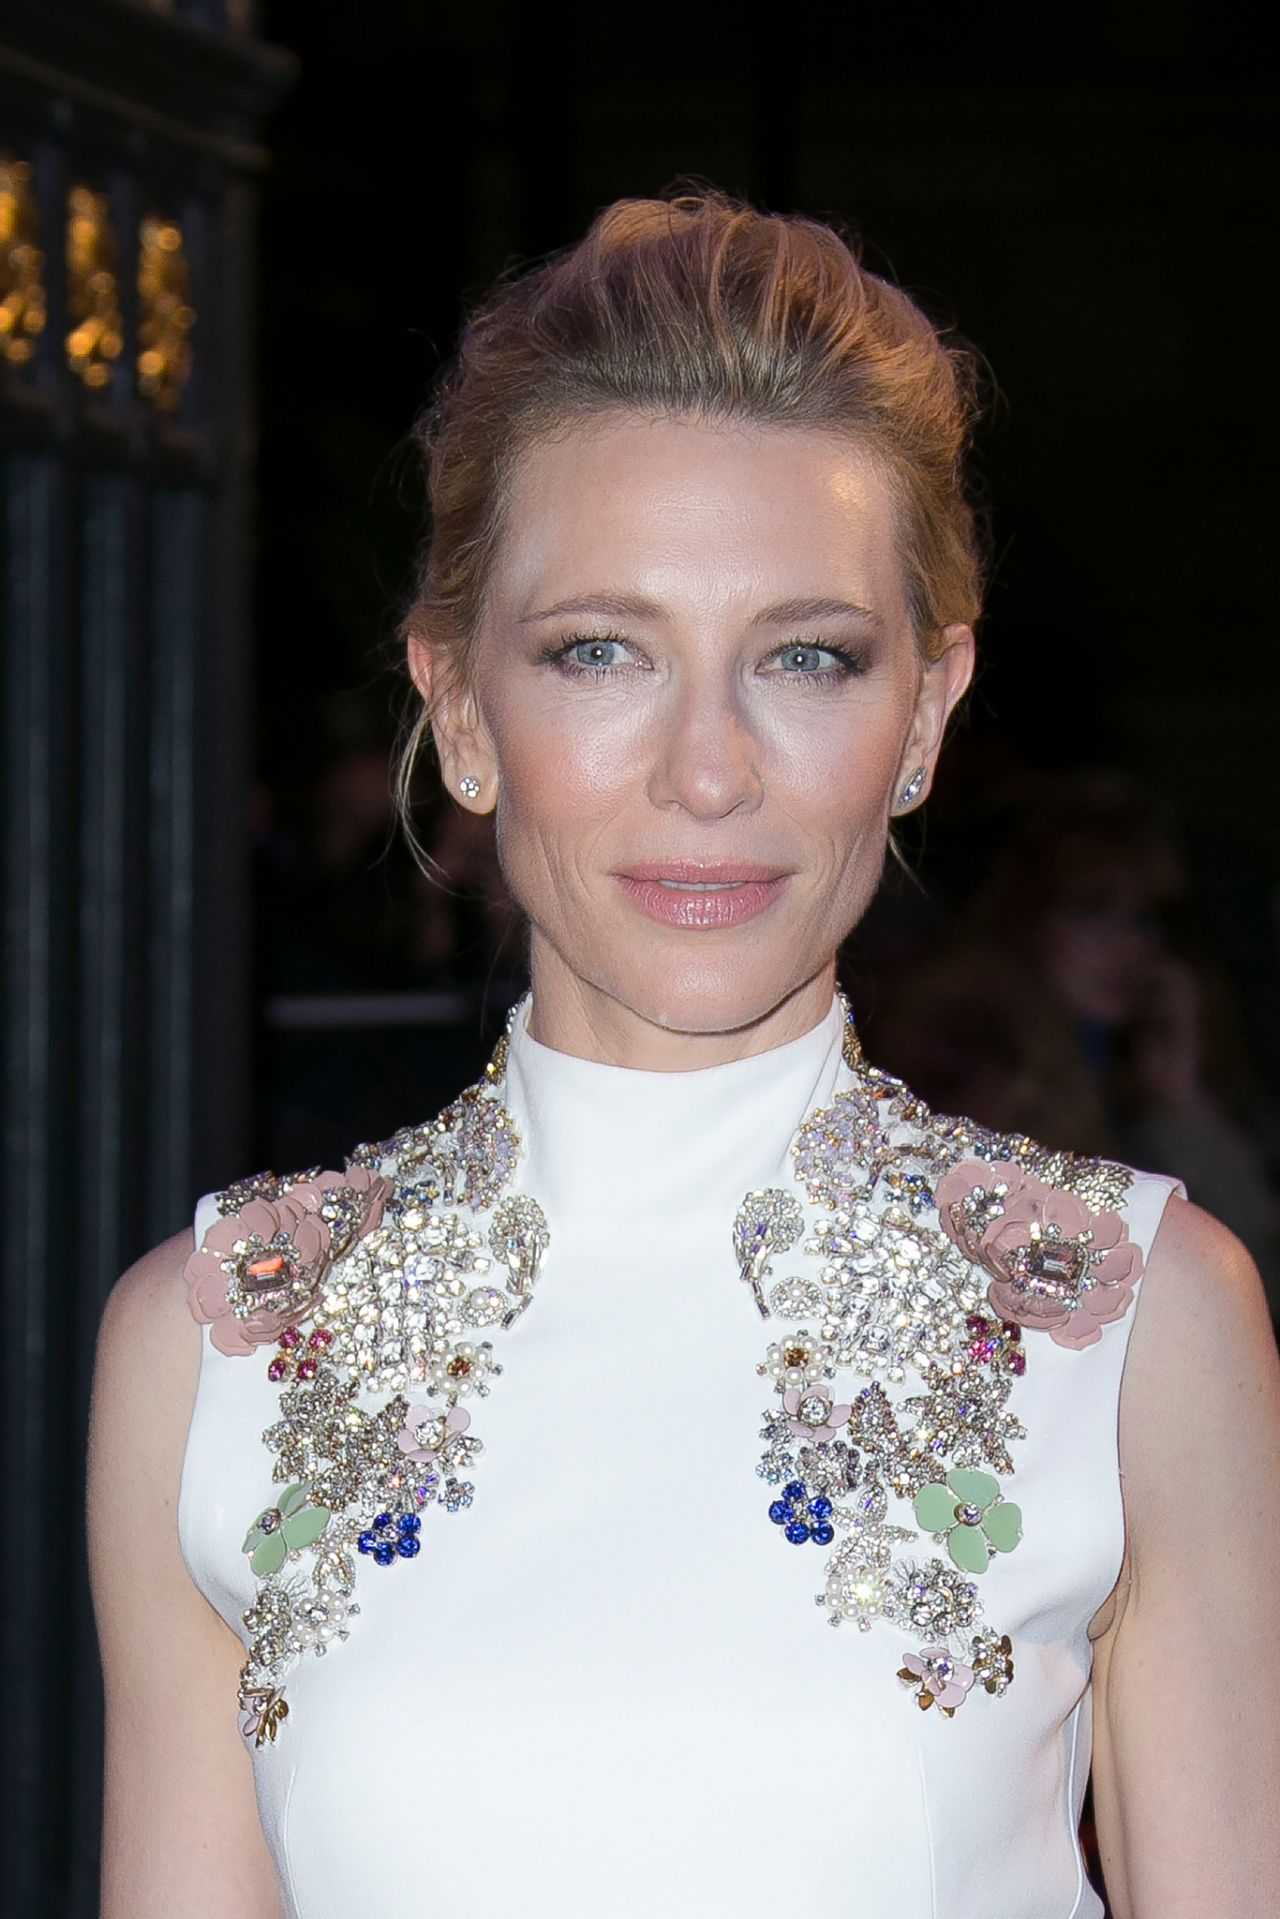 cate-blanchett-2015-bfi-london-film-festival-awards-in-london_8